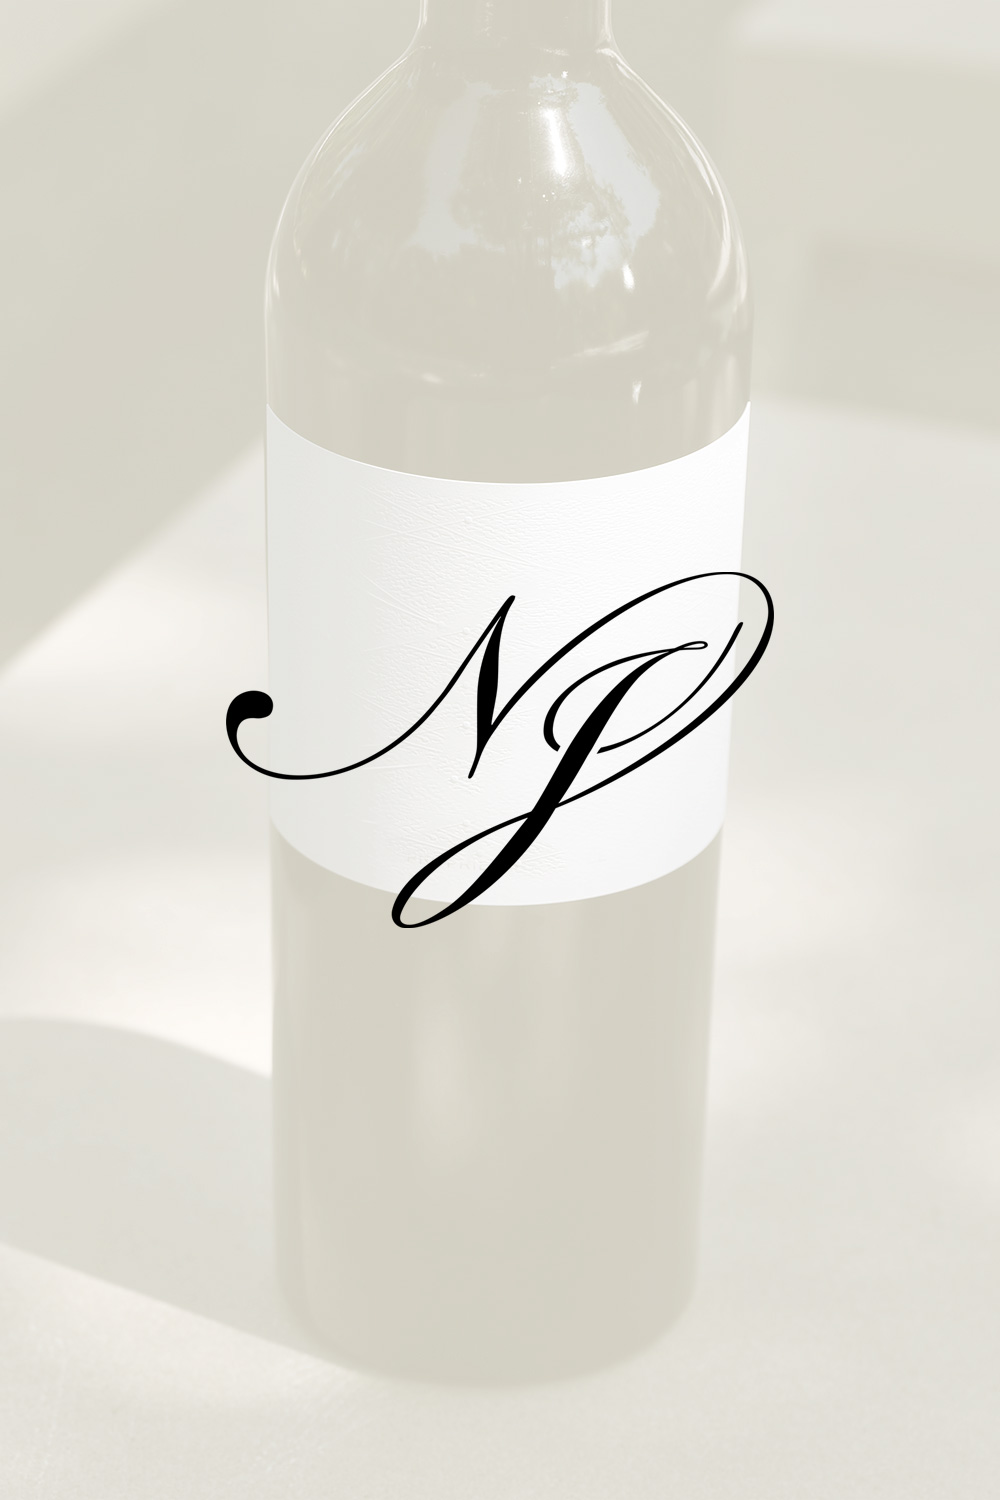 2014 White Label Cabernet Sauv 6L  - Nicholson Jones Selections